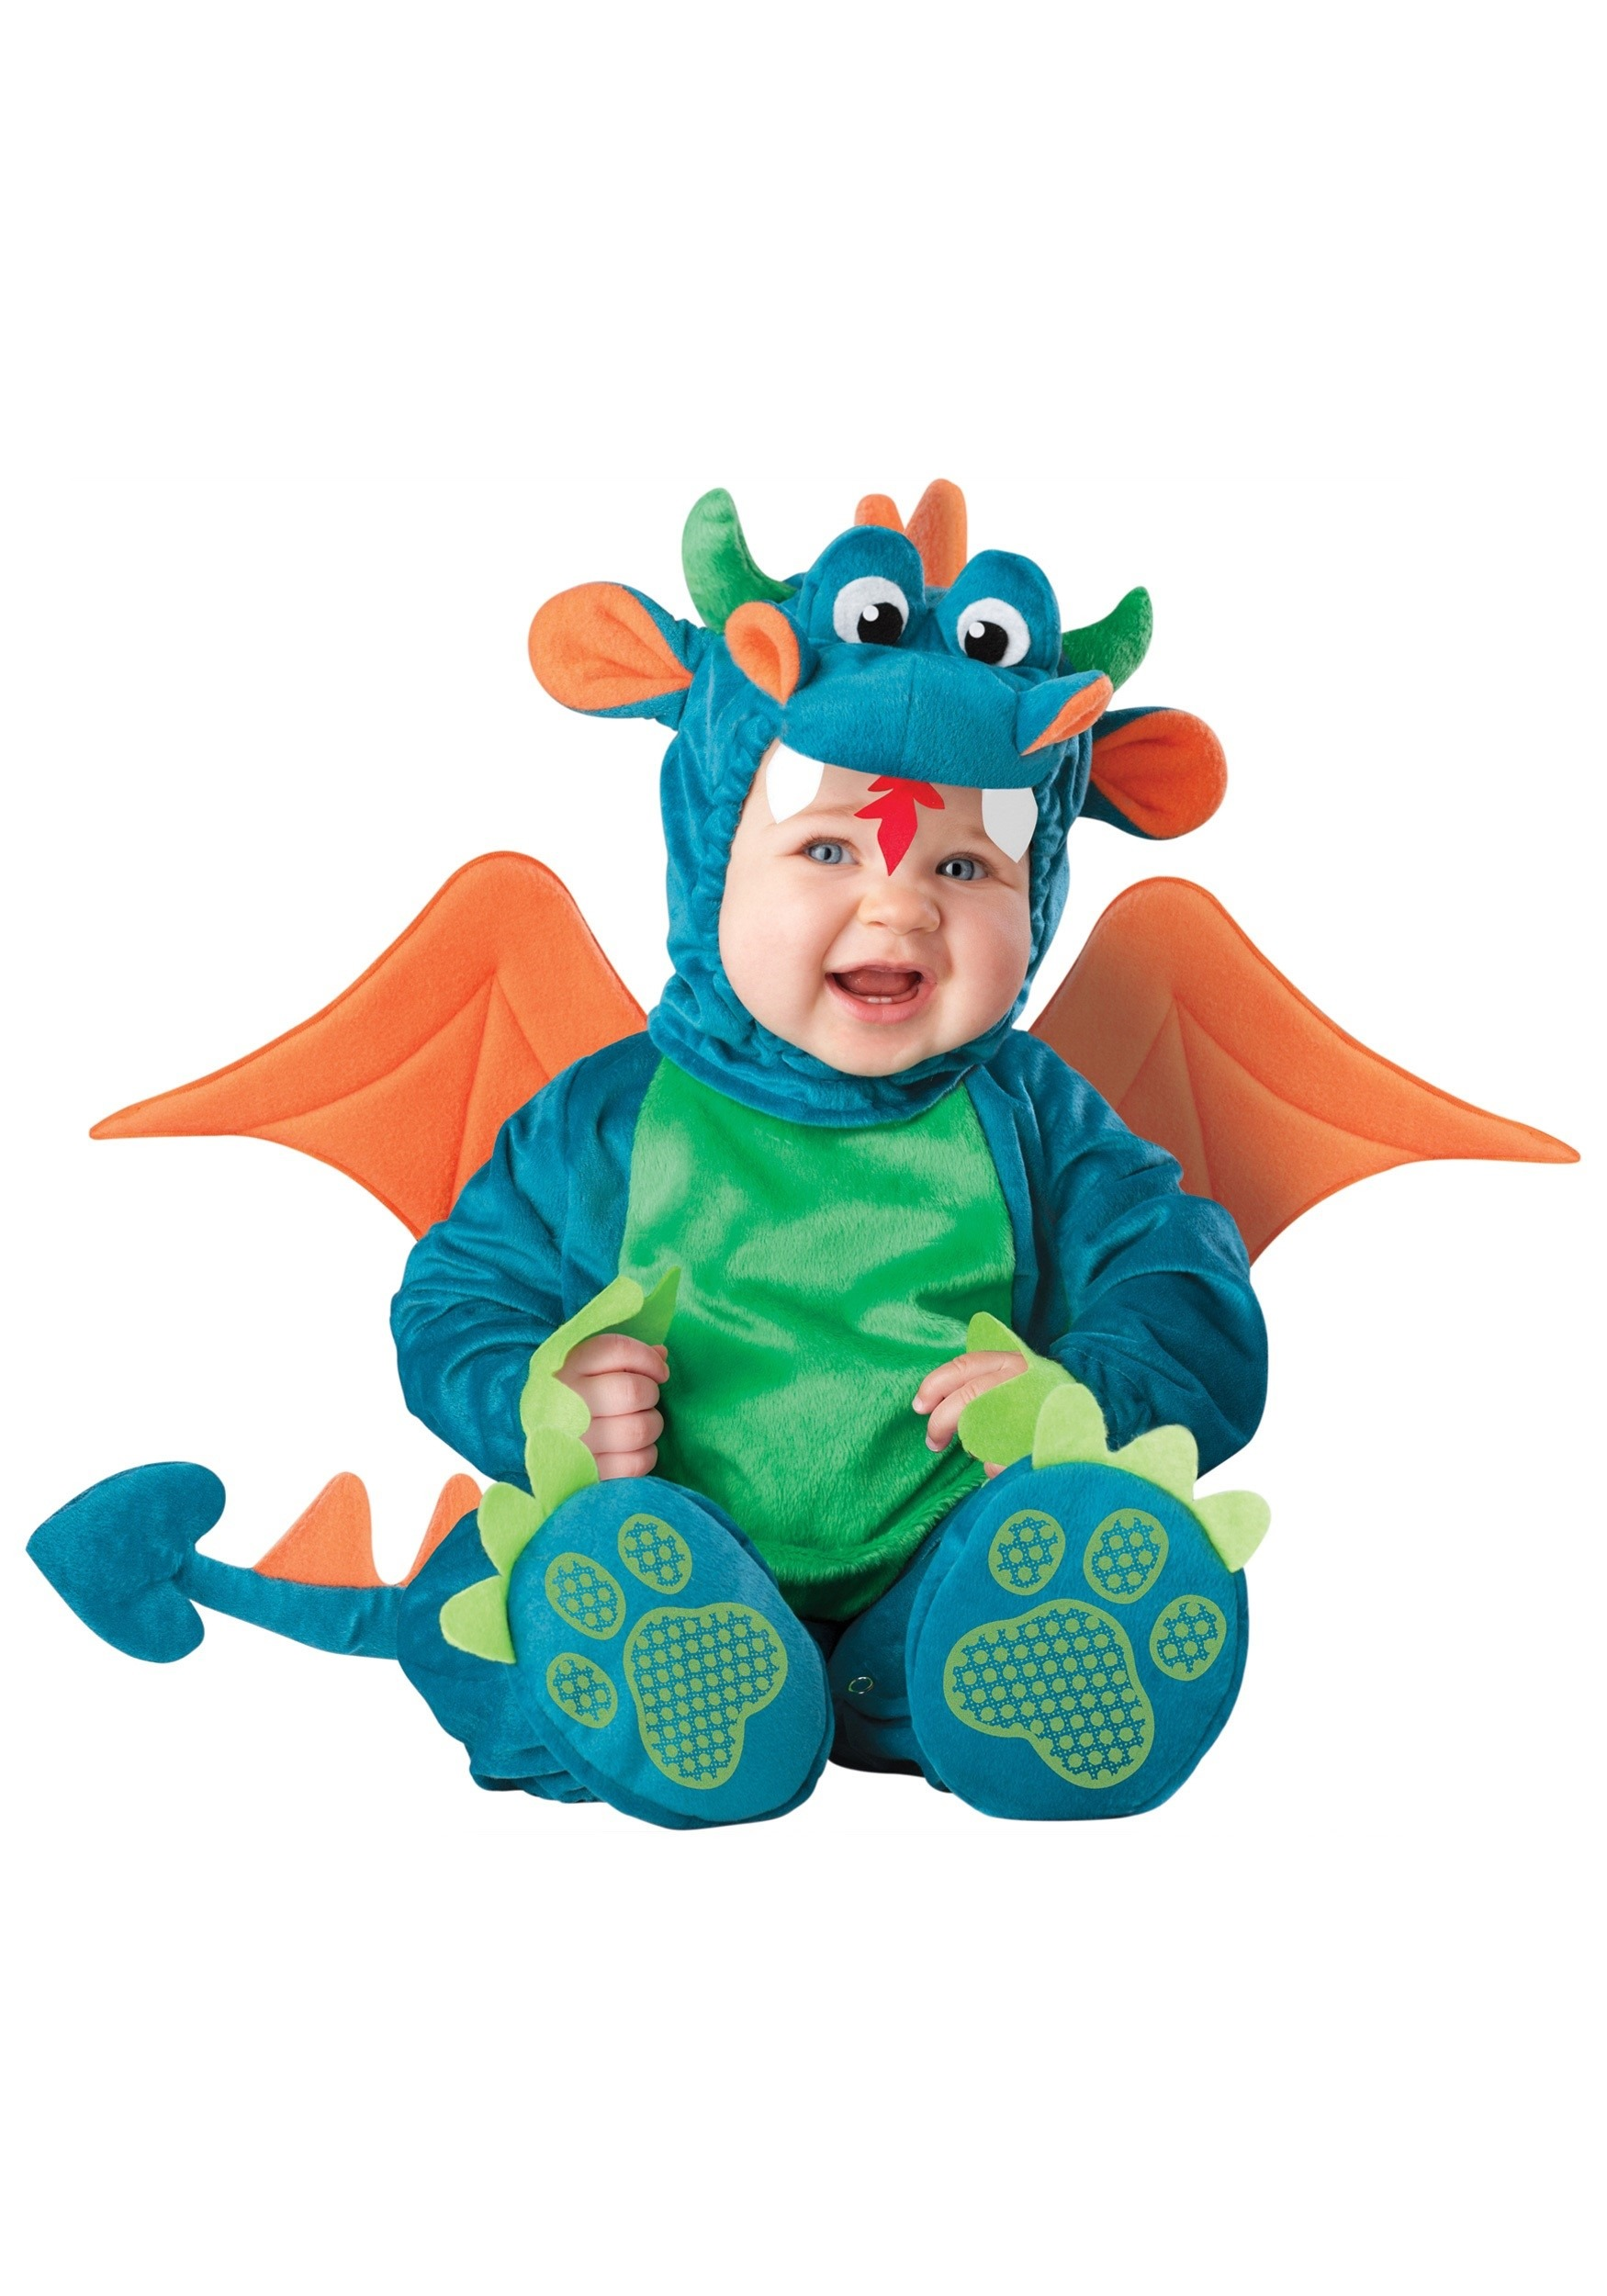 results 61 - 120 of 323 for baby halloween costumes